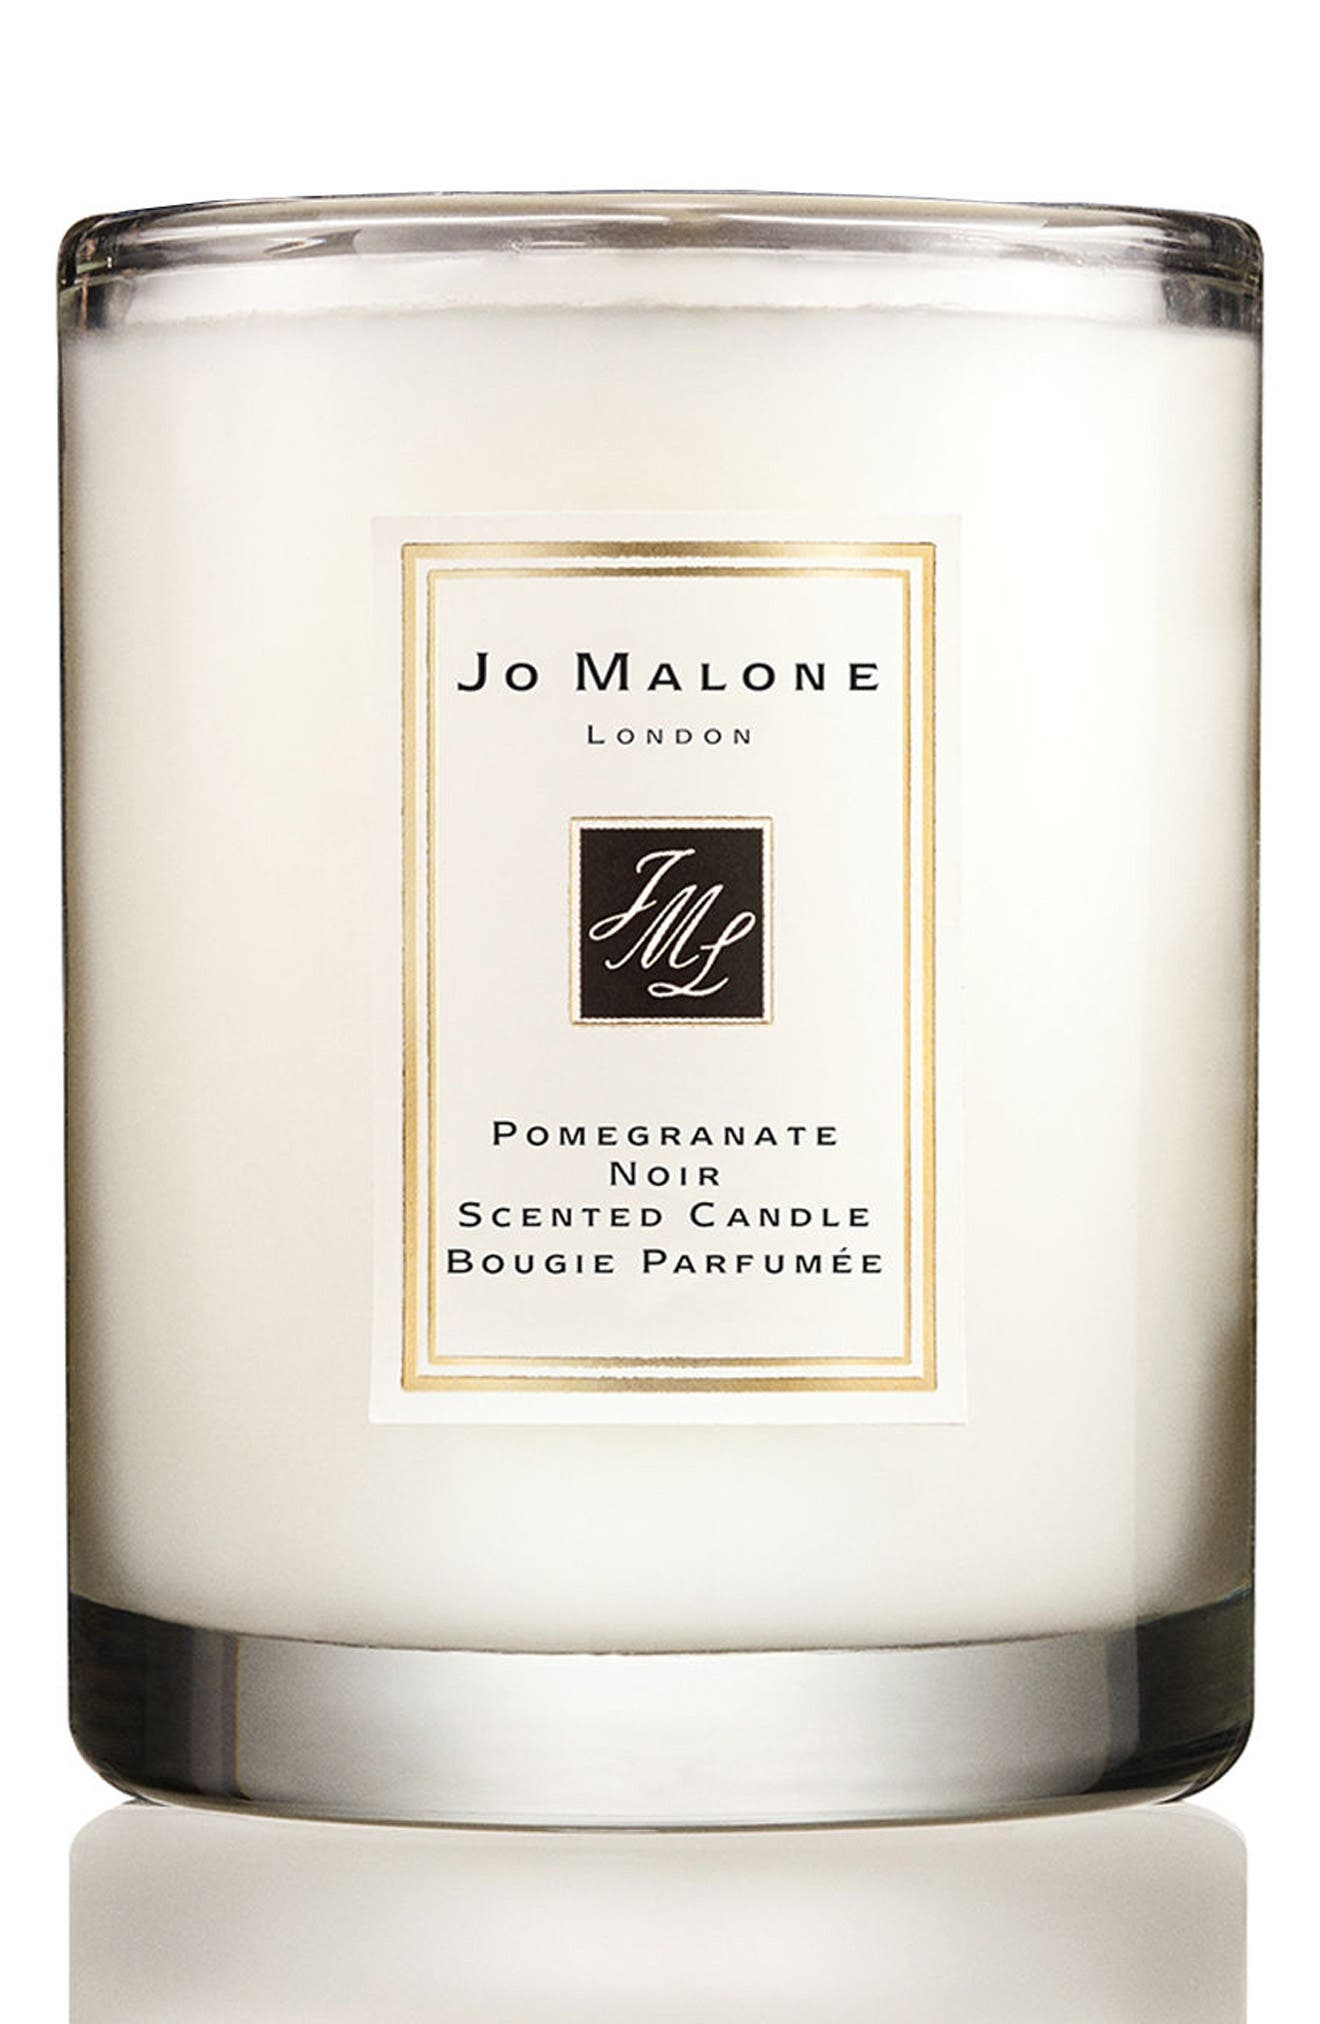 Jo Malone™ 'Pomegranate Noir' Scented Travel Candle